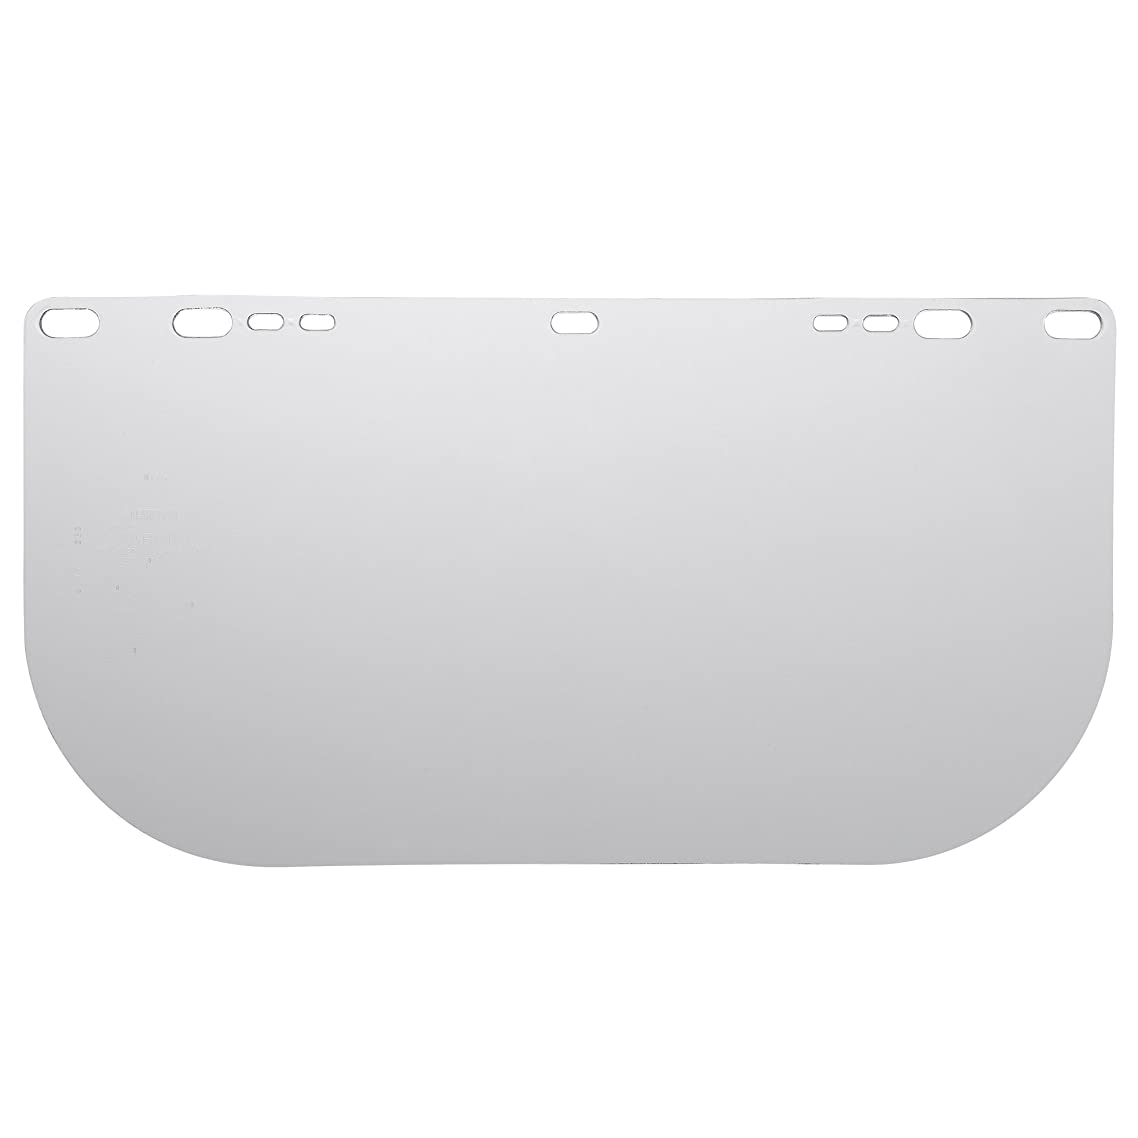 """Jackson Safety F20 High Impact Face Shield (30706), Polycarbonate, 8"""" x 15.5"""" x 0.04"""", Clear, Face Protection, Unbound, 36 Shields / Case melxdpjo75882287"""